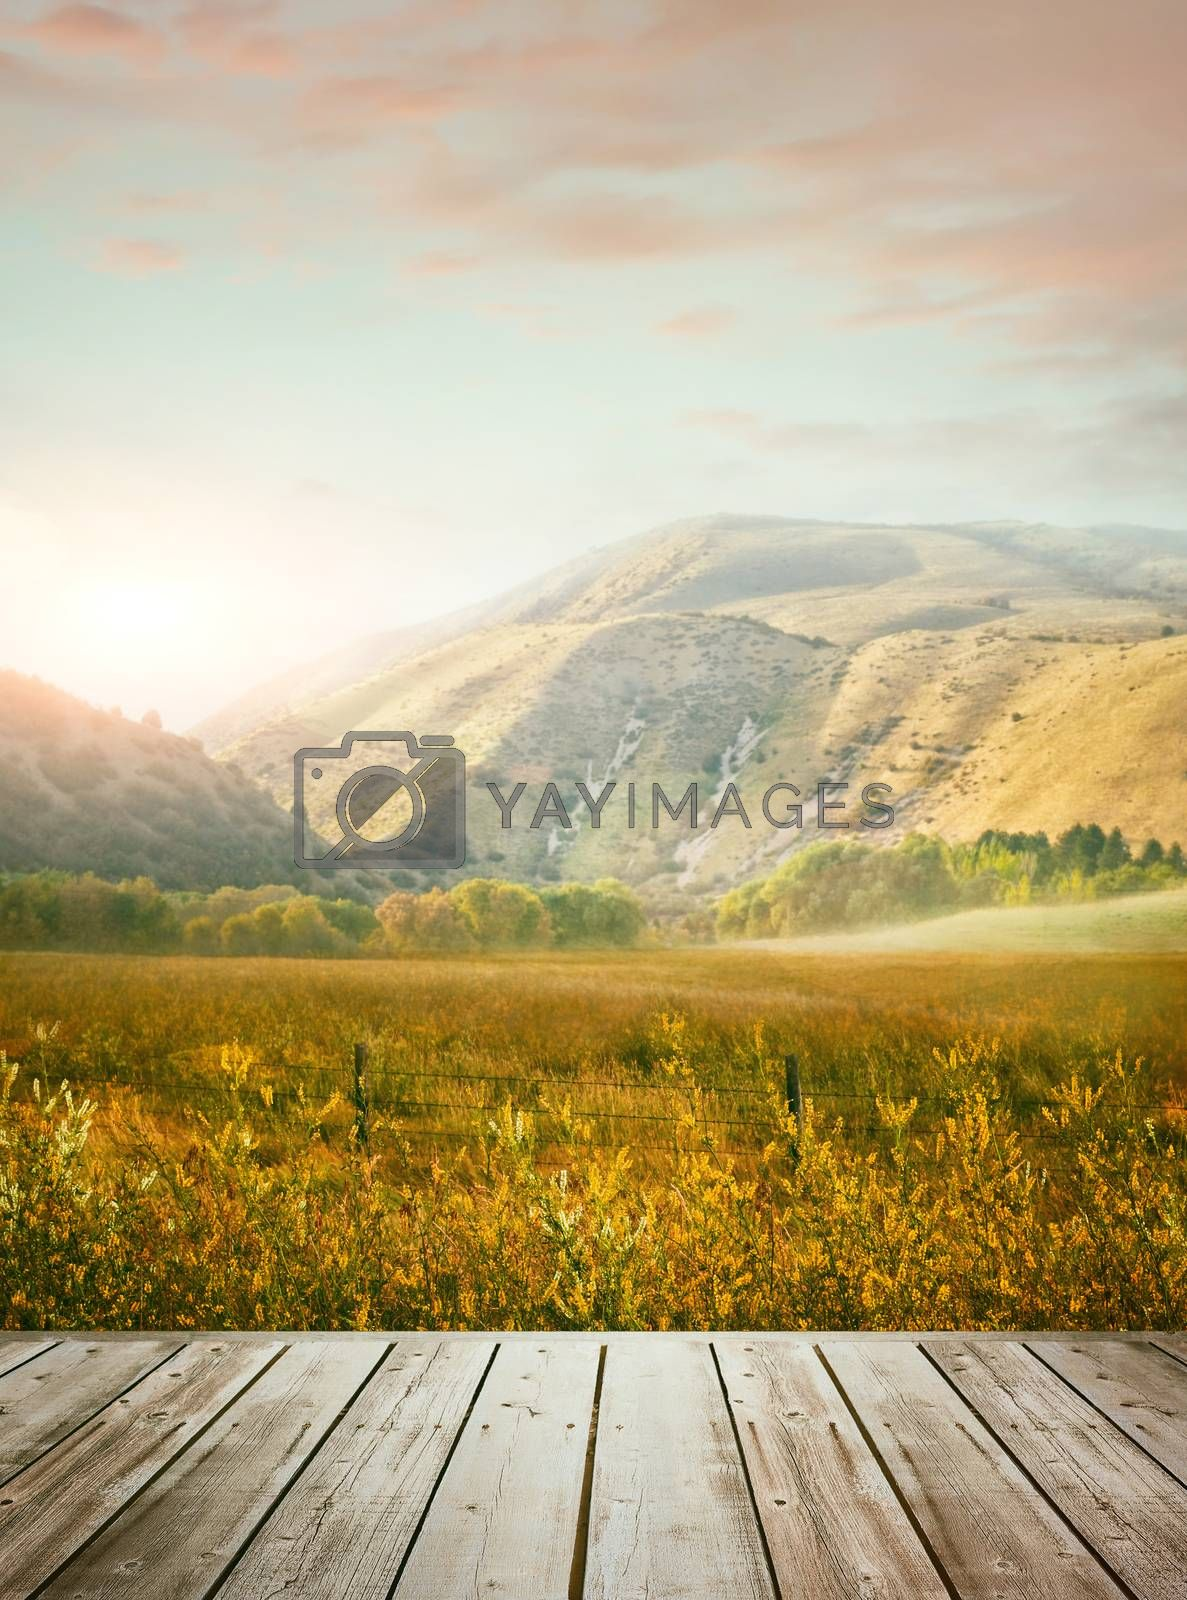 Wooden table with mountains in background